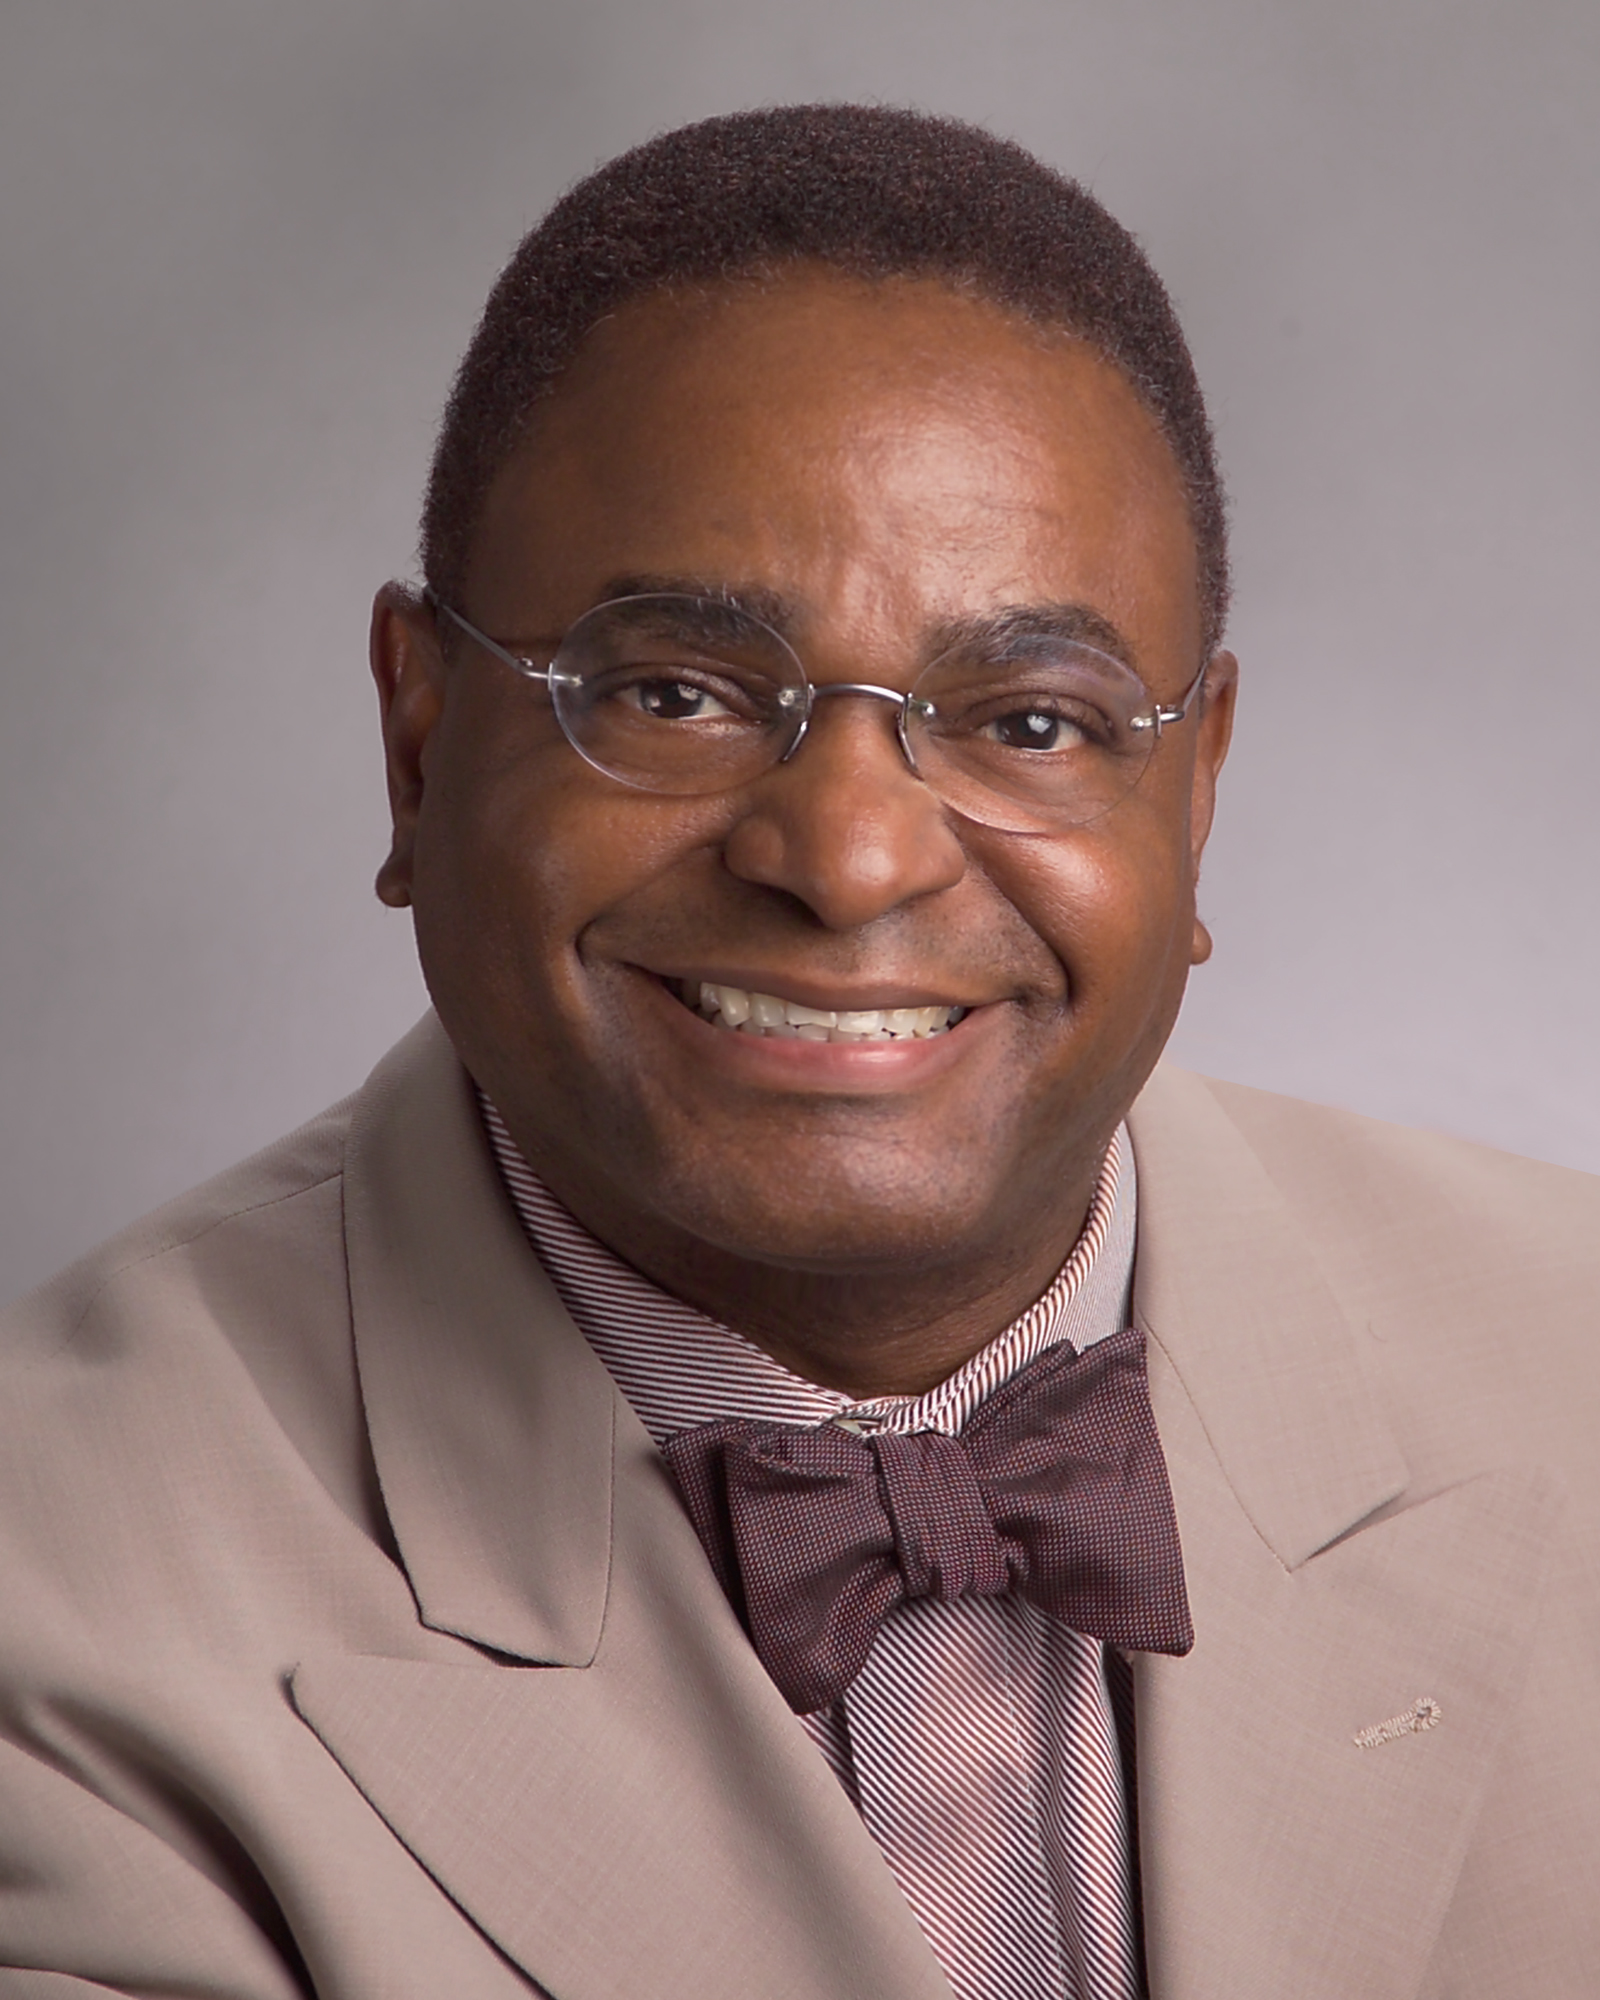 Financial journalist, author and television host Kelvin Boston (Image: Courtesy of Subject)